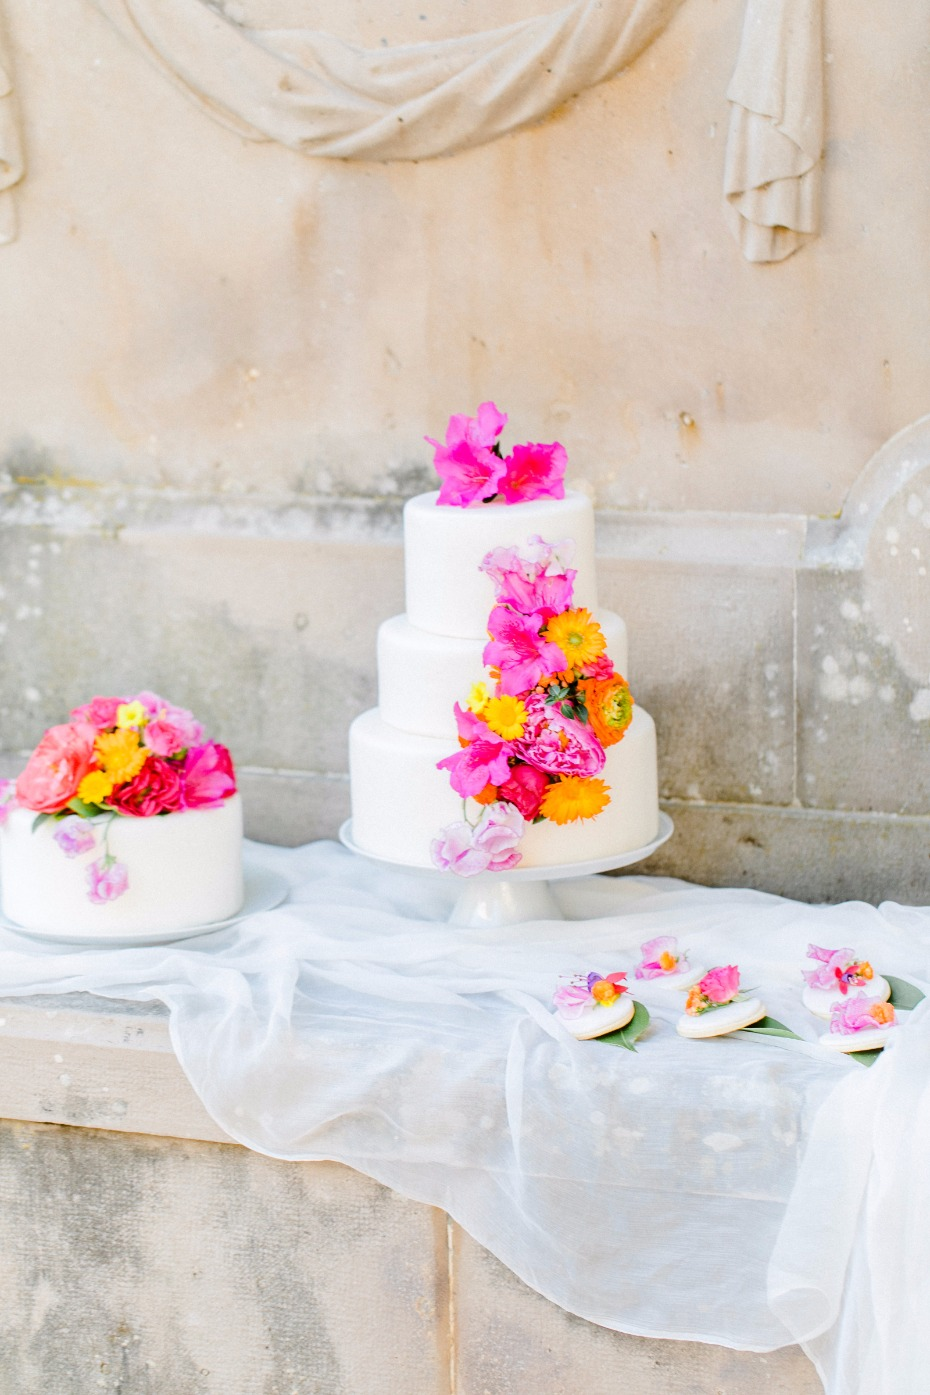 hot pink and orange flower accents for your wedding cak